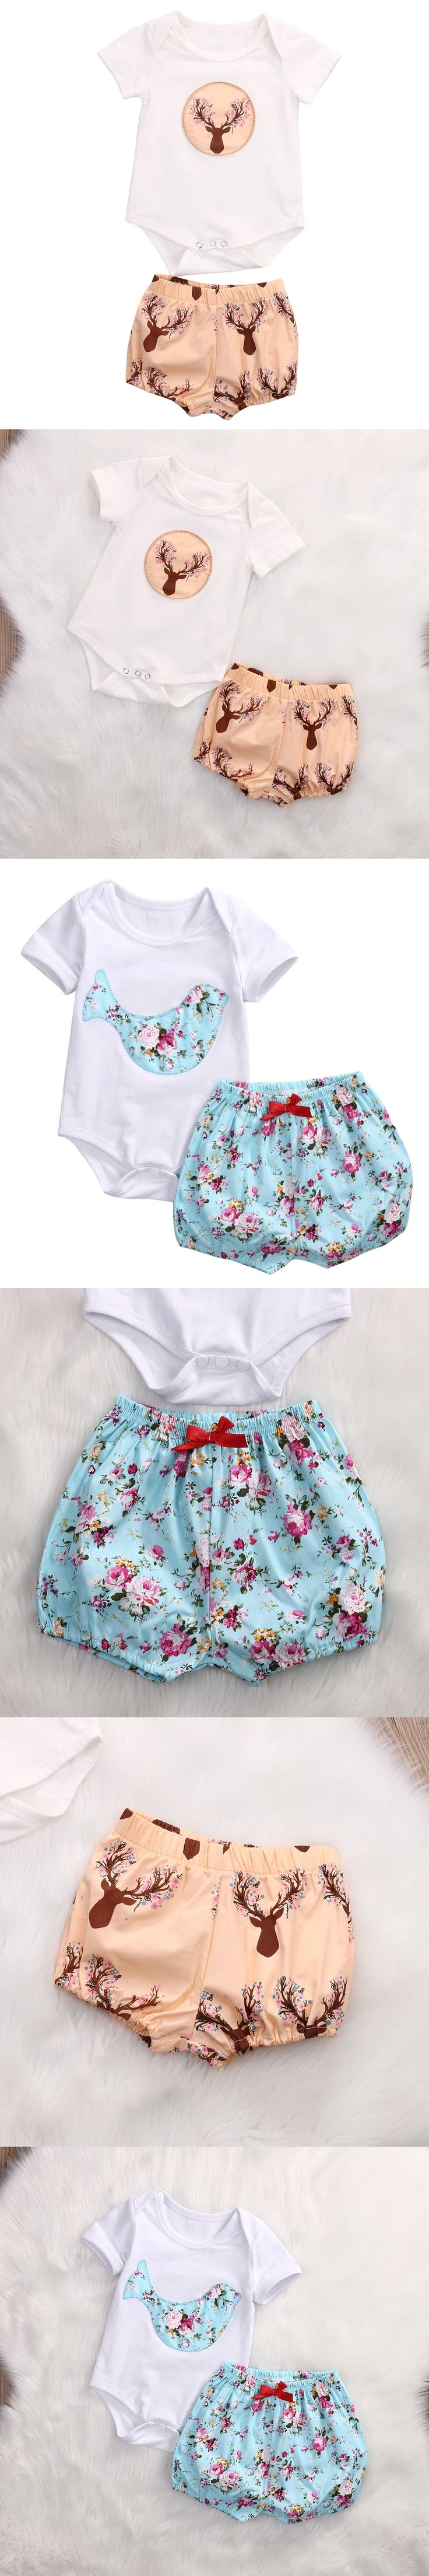 152 best Baby Girls Clothing images on Pinterest